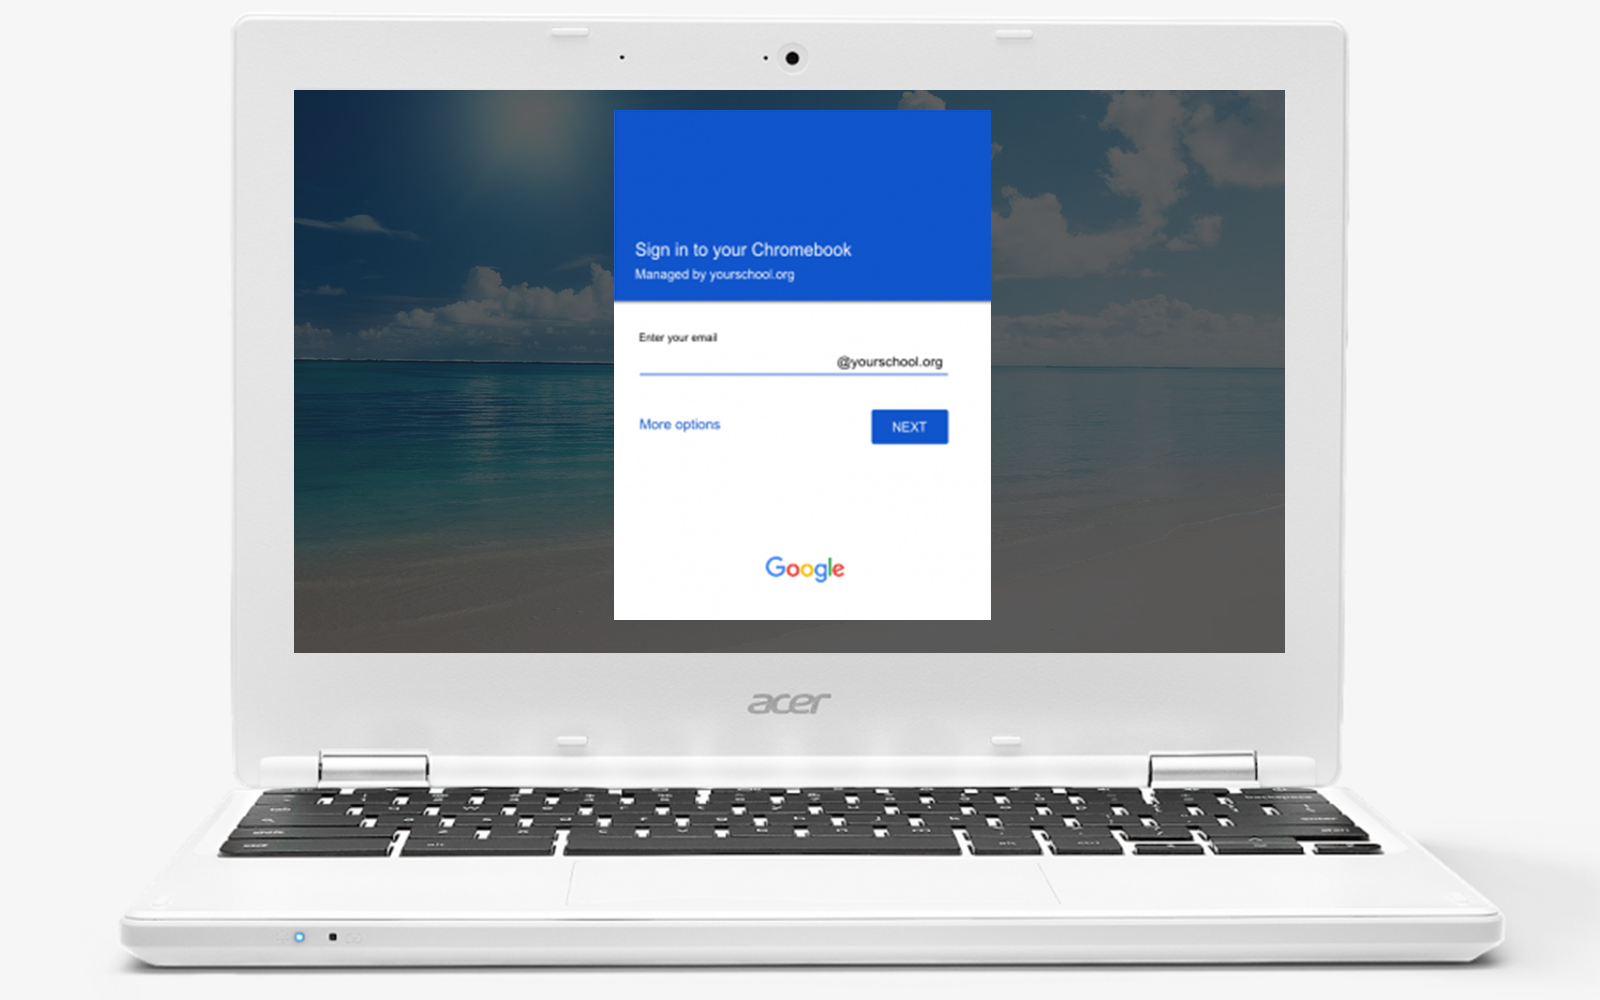 Chromebook-Login-Mock-Up__1_.png